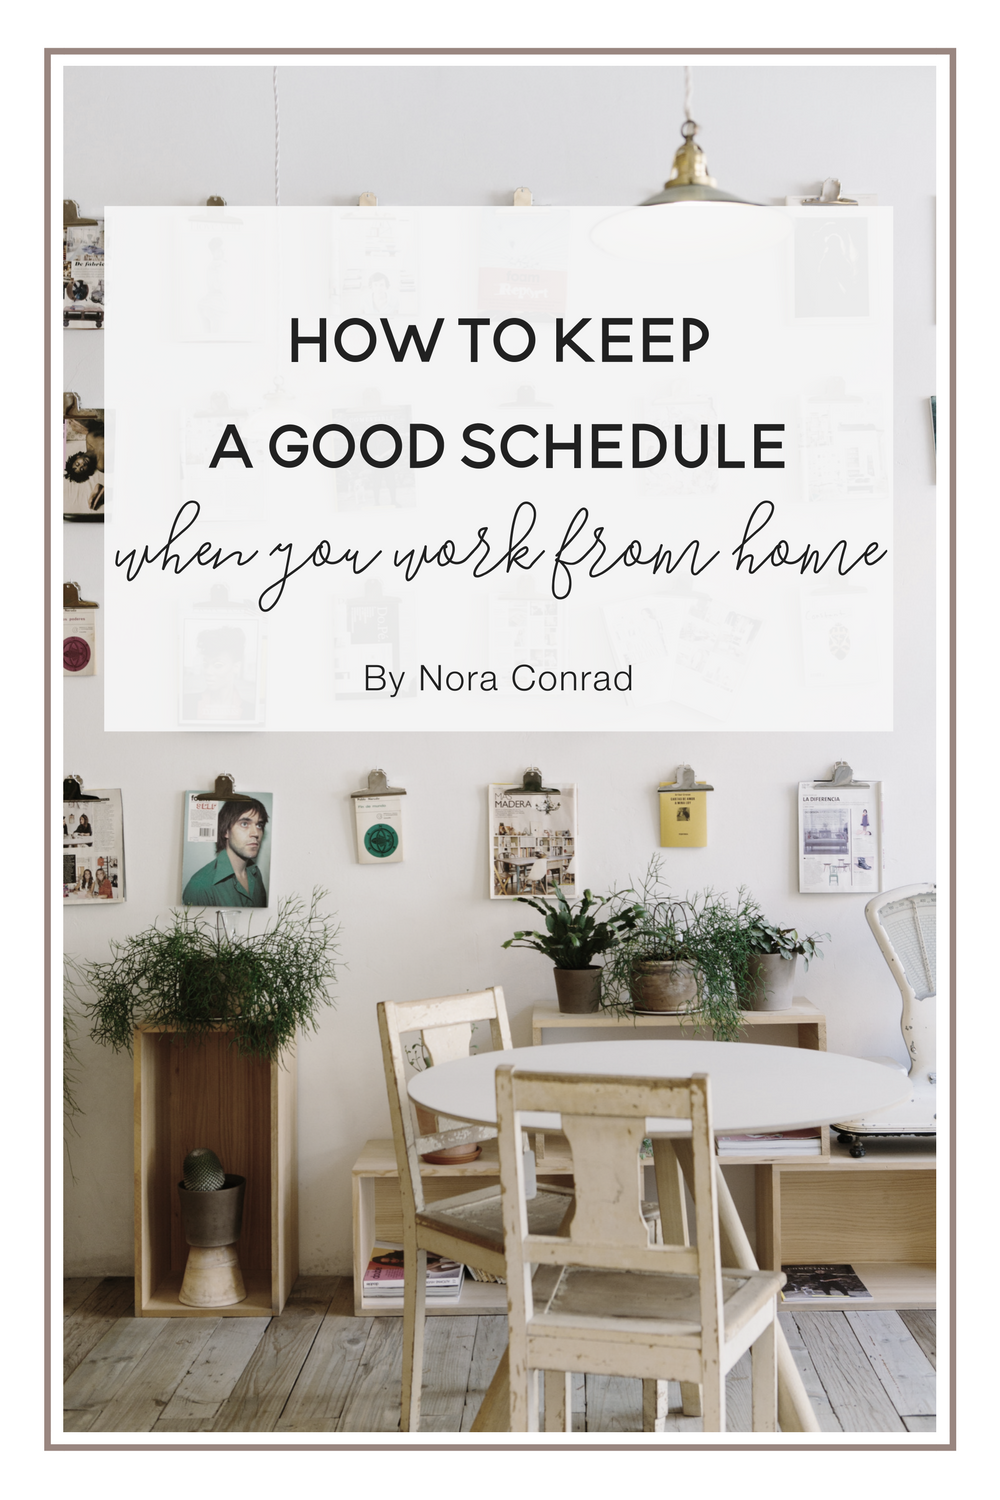 How to keep a good schedule when you work from home